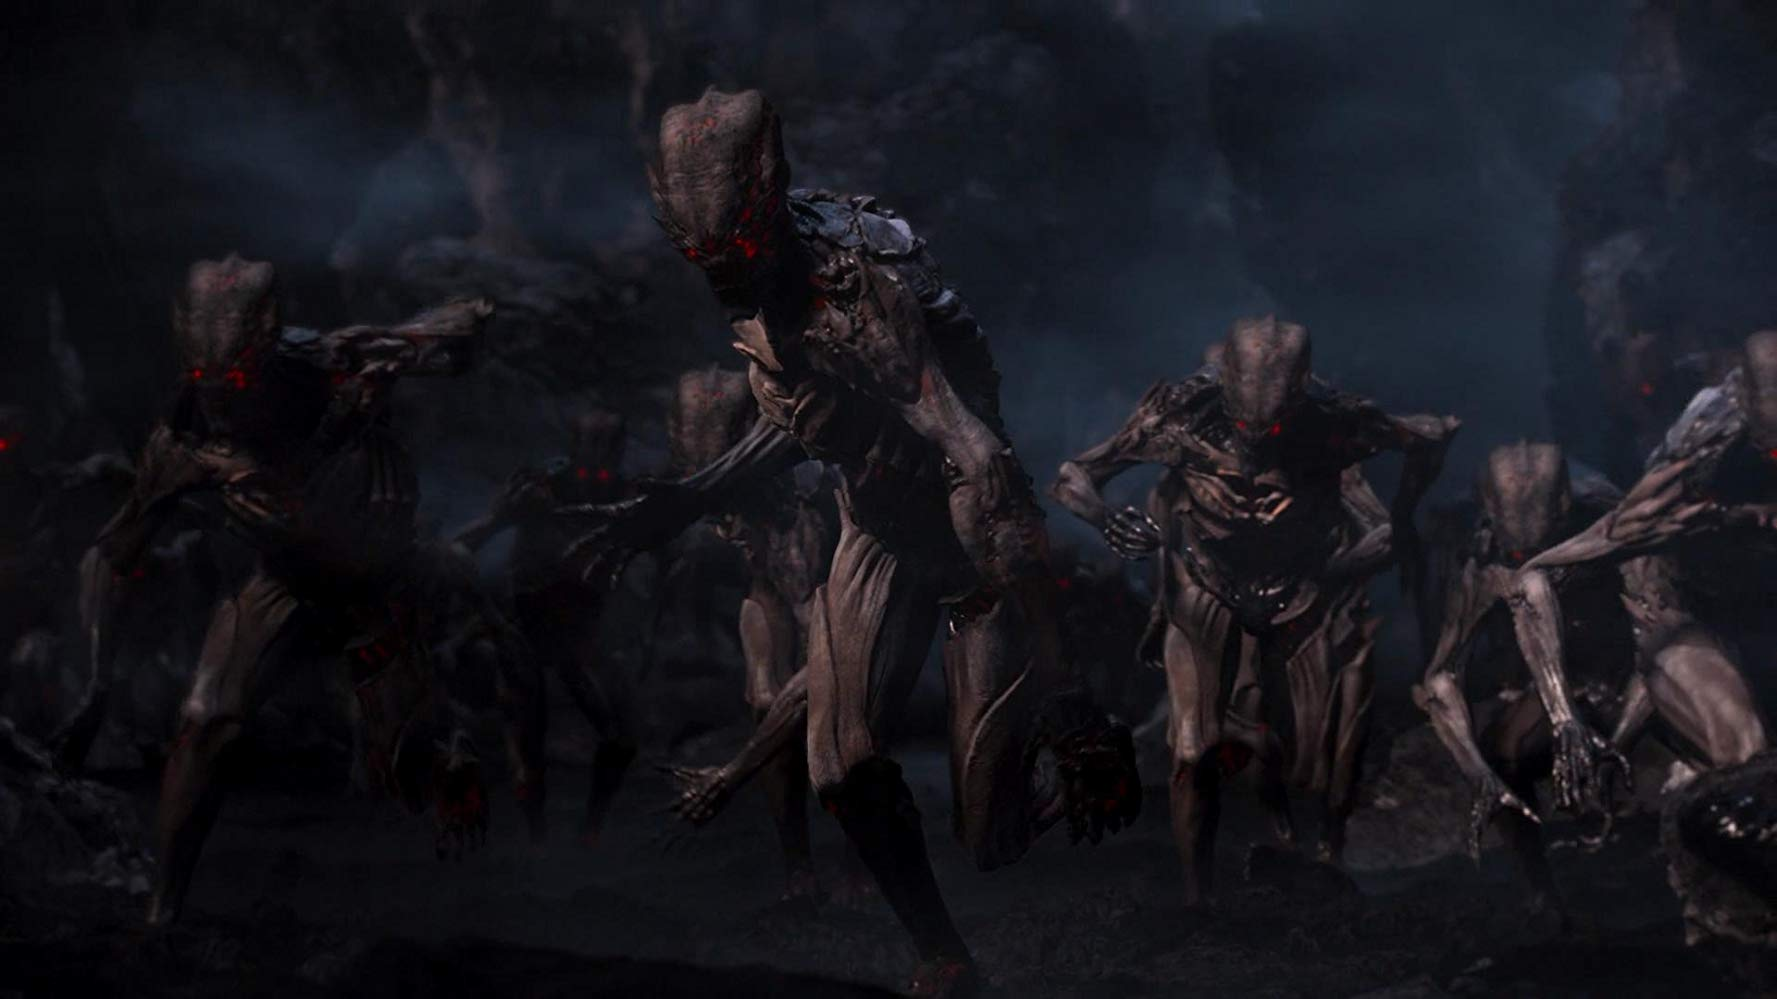 Hordes of demons in Doom: Annihilation (2019)